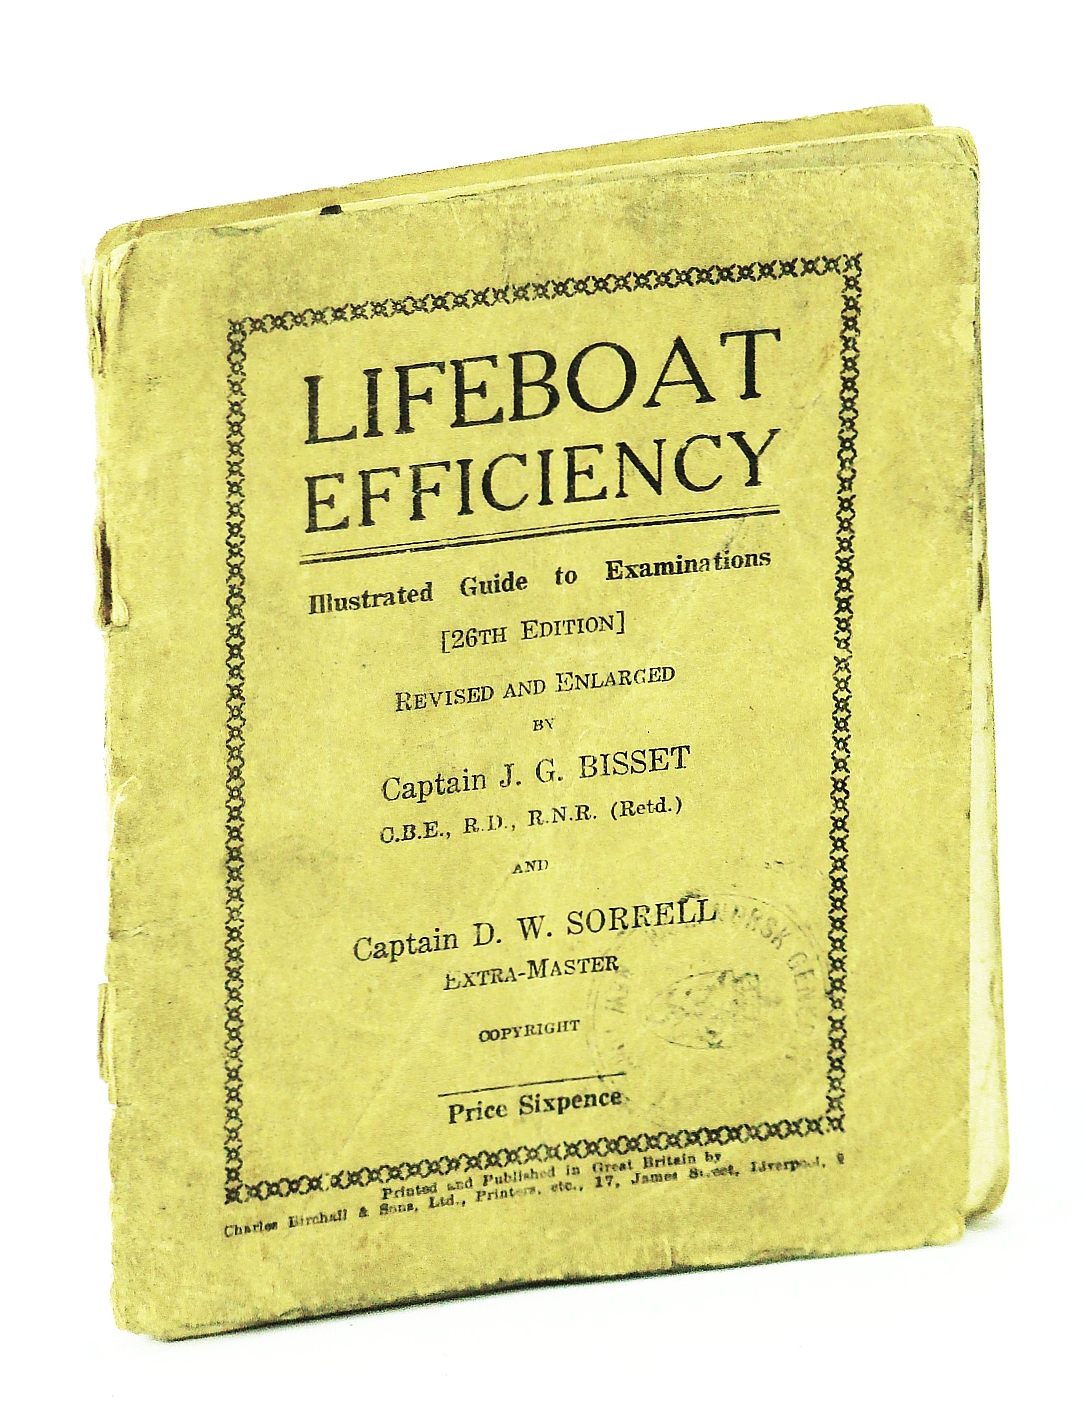 Image for Lifeboat Efficiency - Illustrated Guide to Examinations